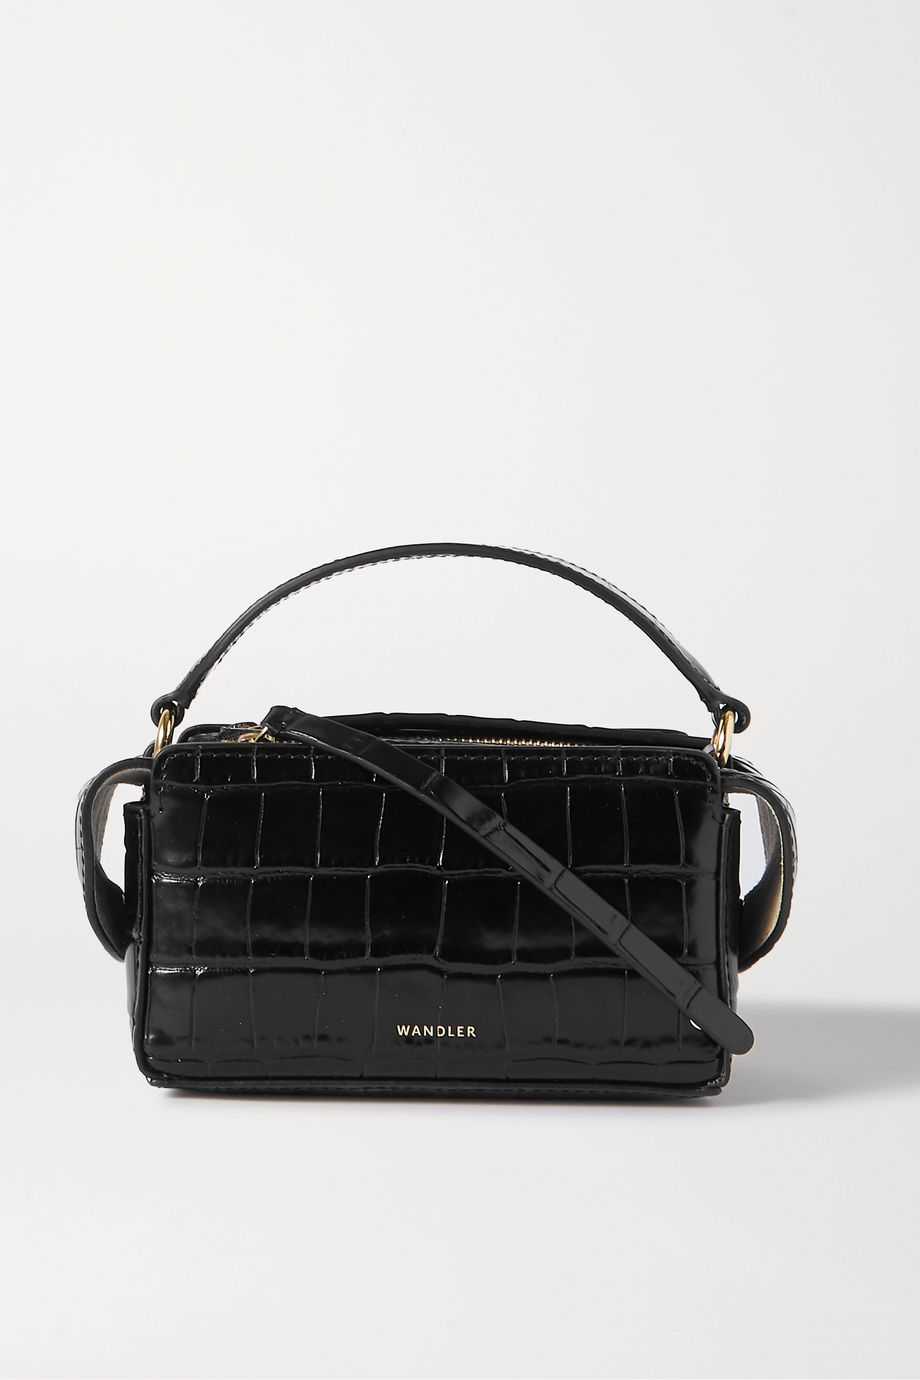 Wandler Yara Box croc-effect leather tote